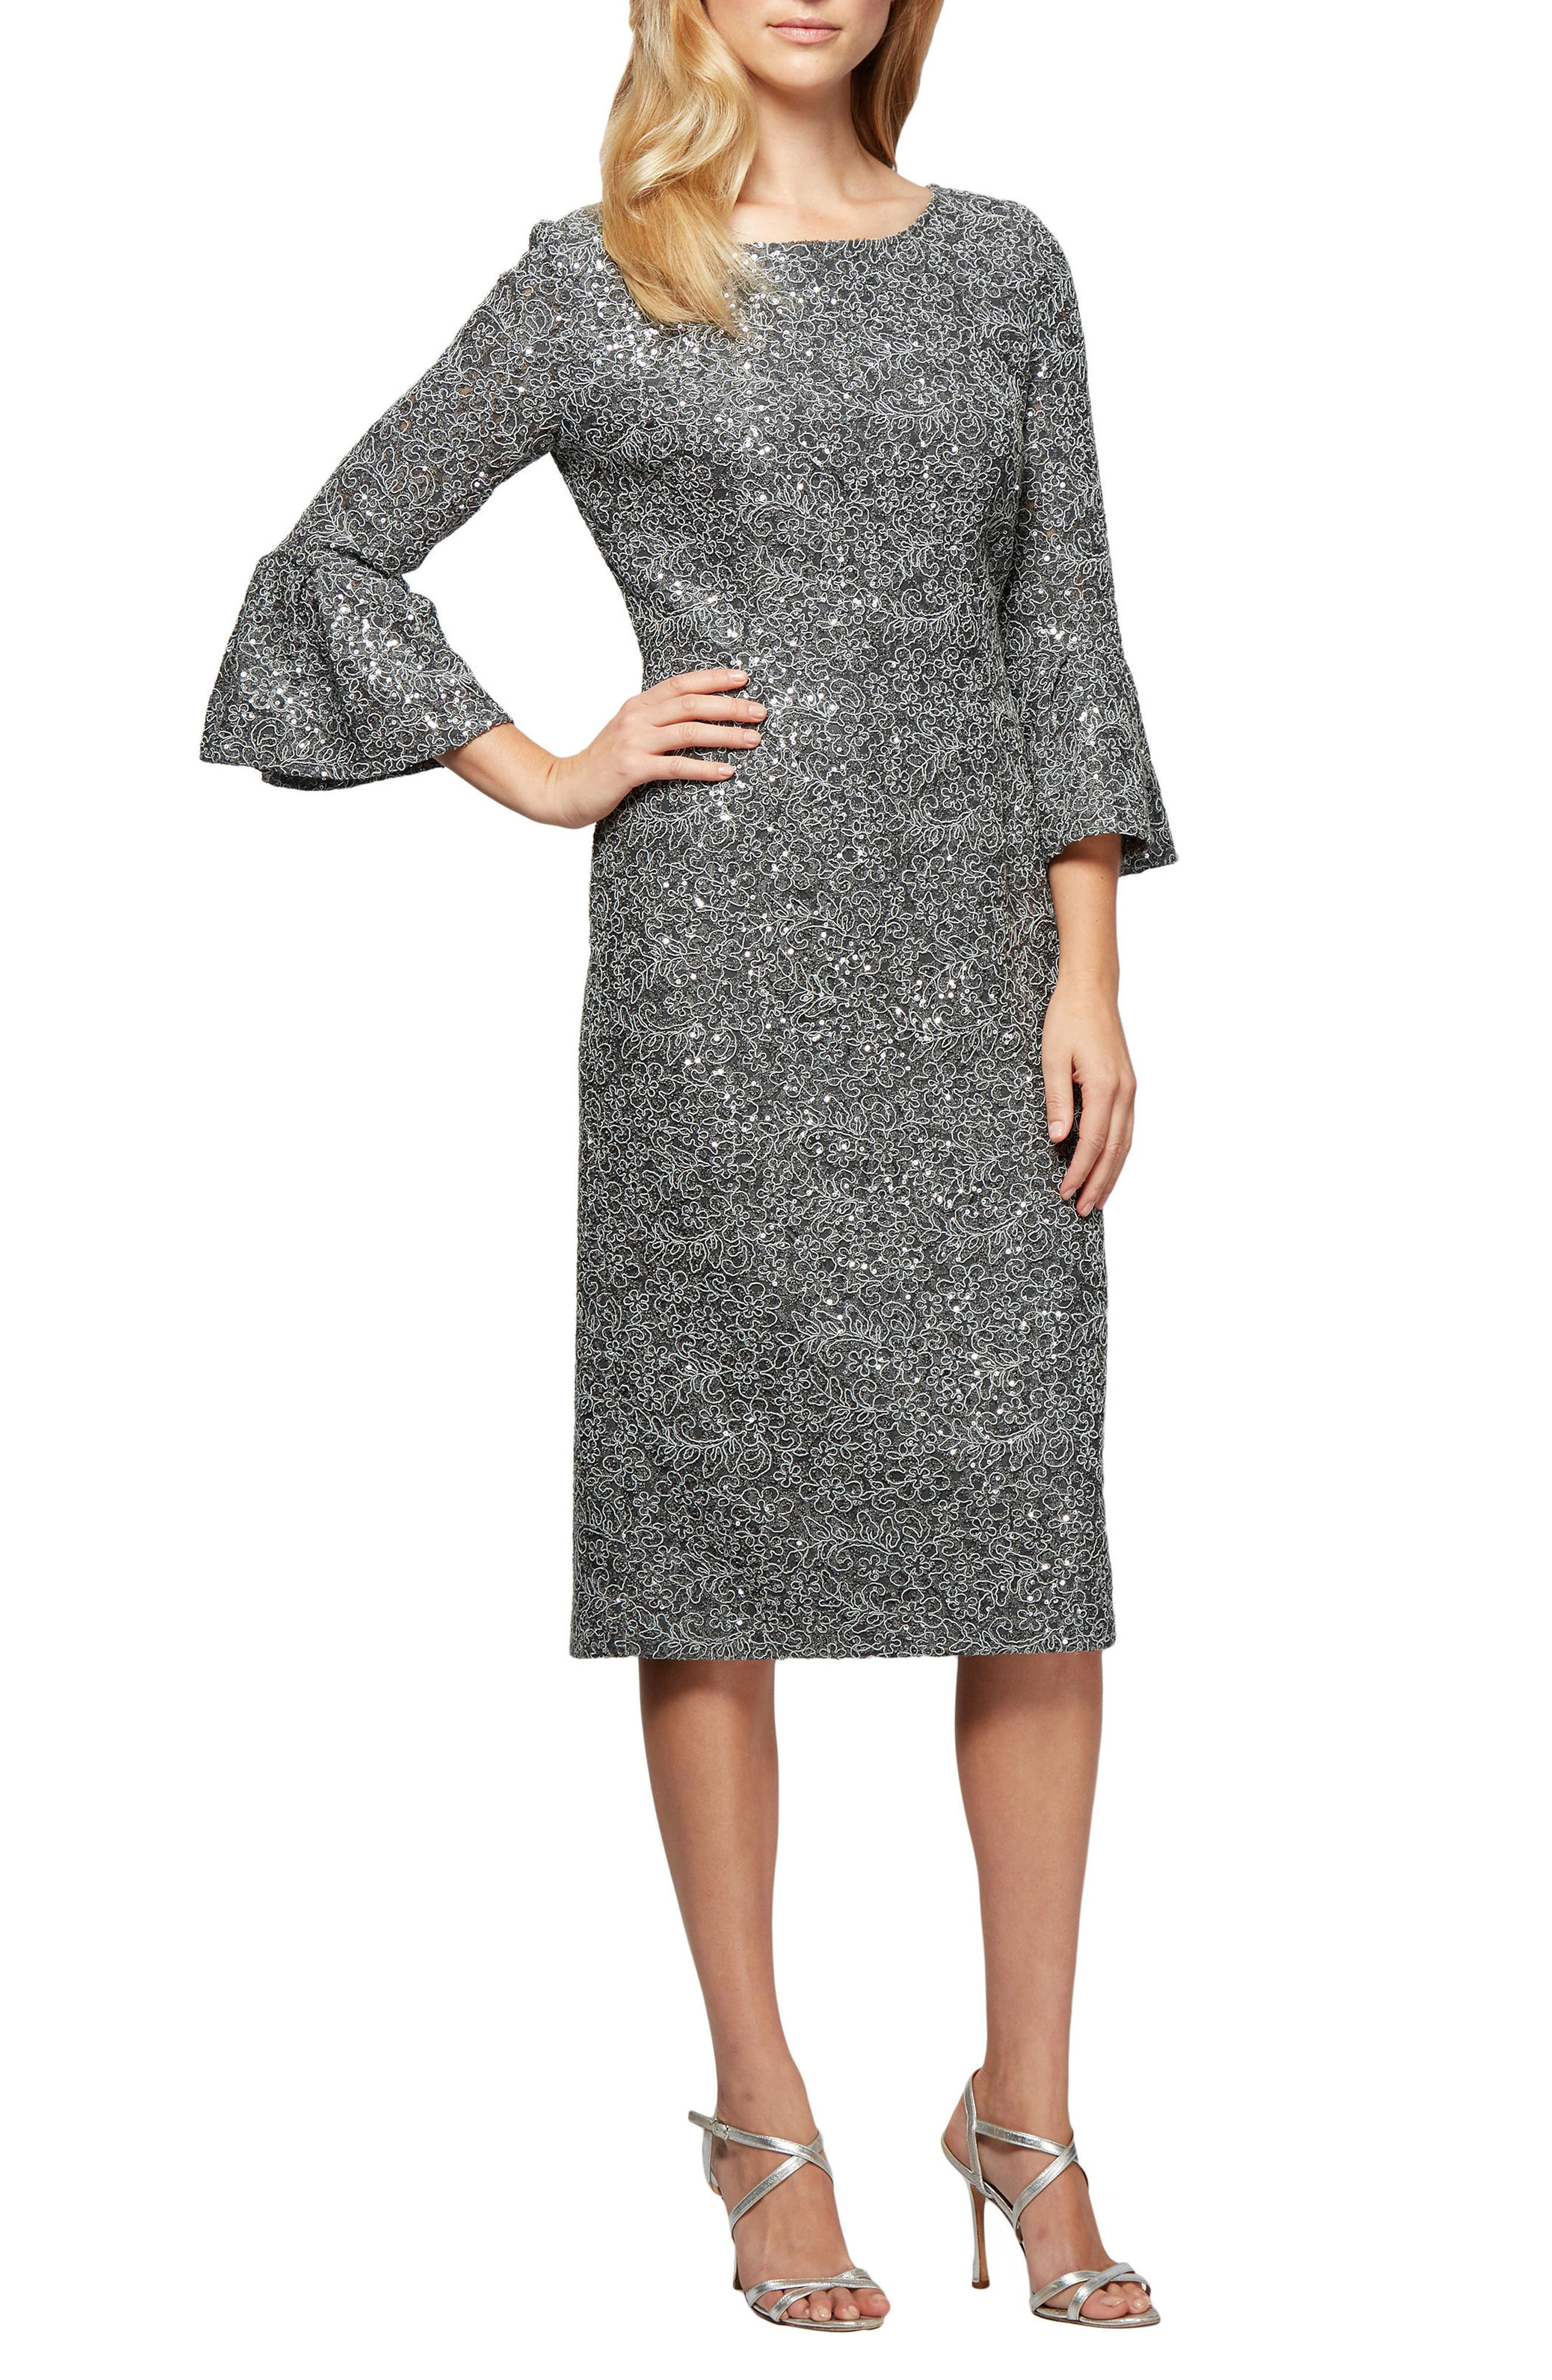 Embroidered Lace Shift Dress,                         Main,                         color, Gunmetal